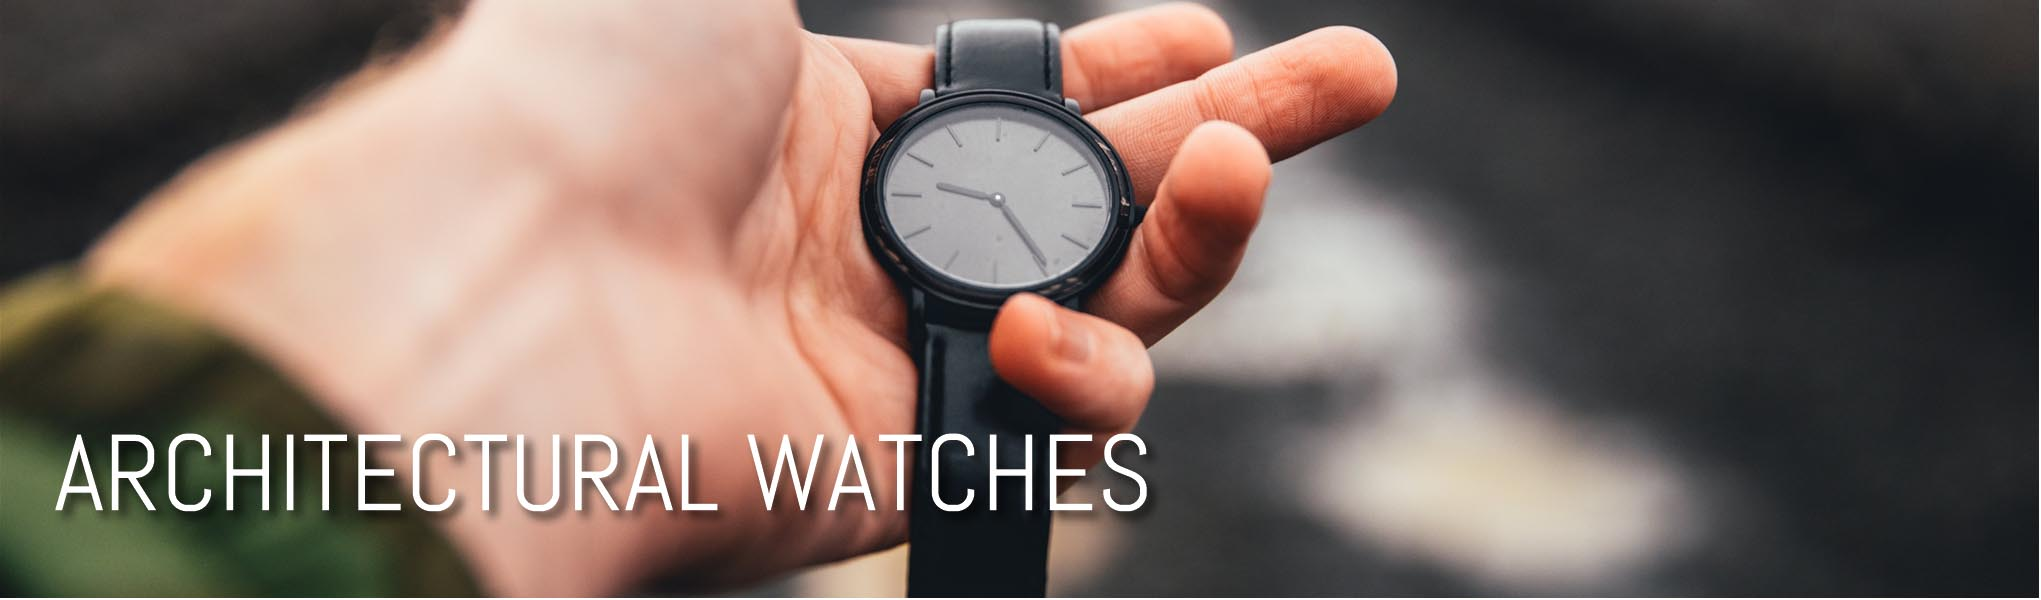 ARCHITECTURAL WATCHES